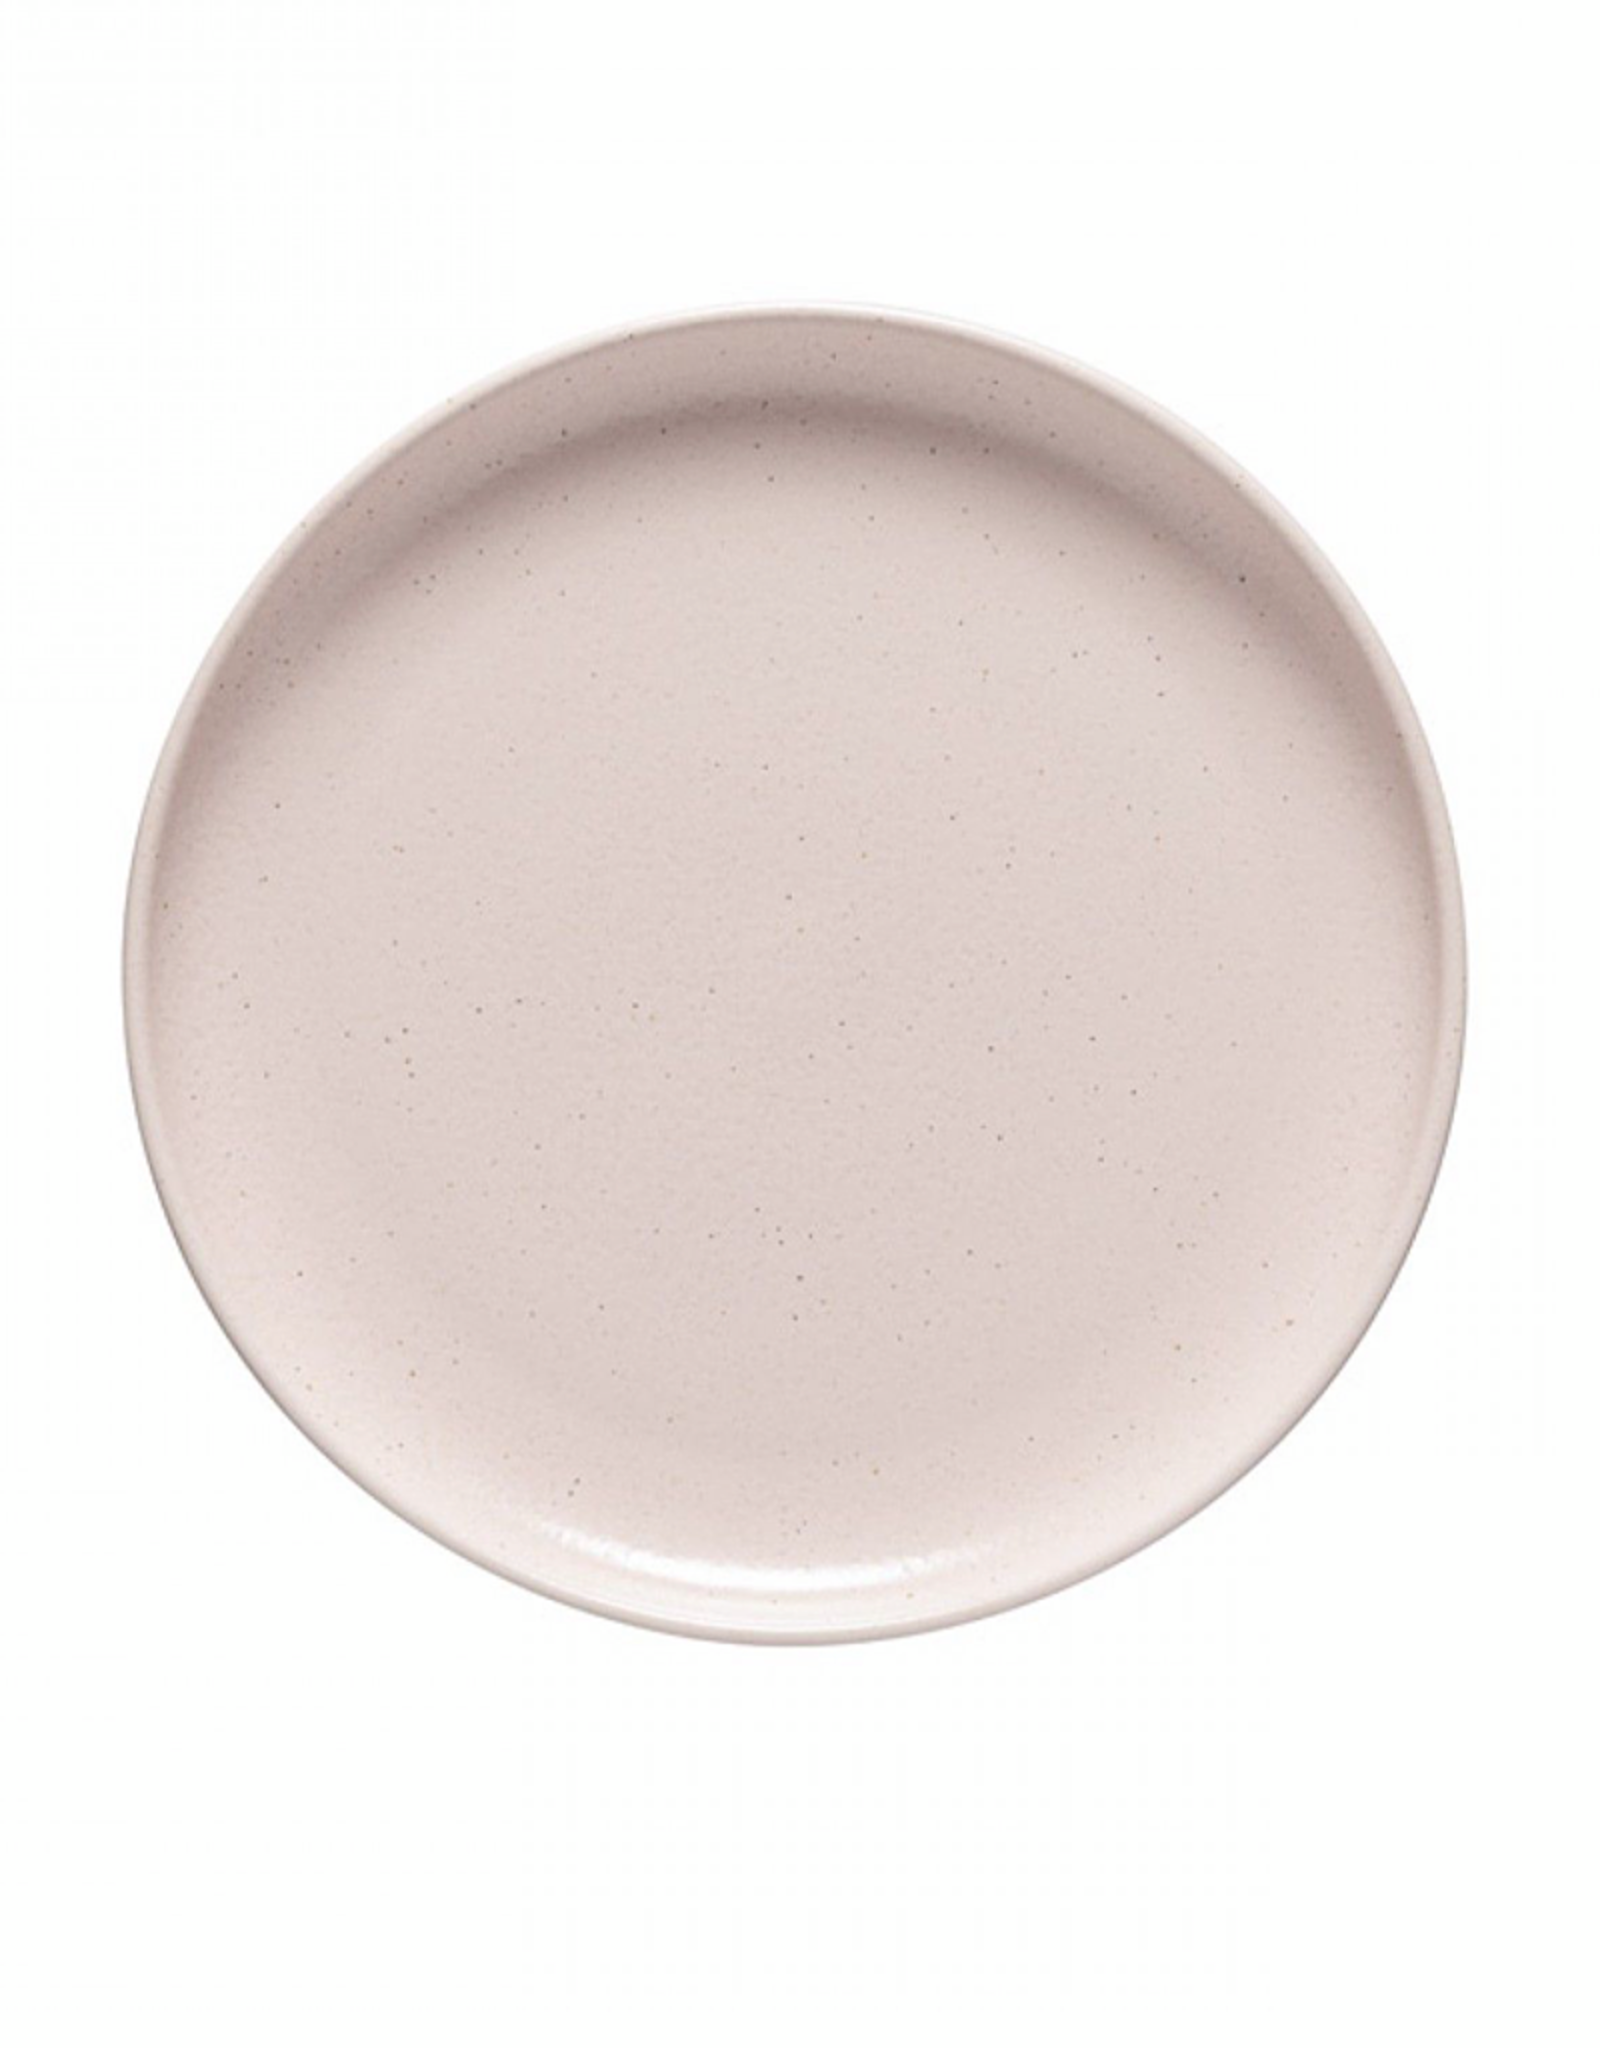 Casafina Pacifica Dinner Plate